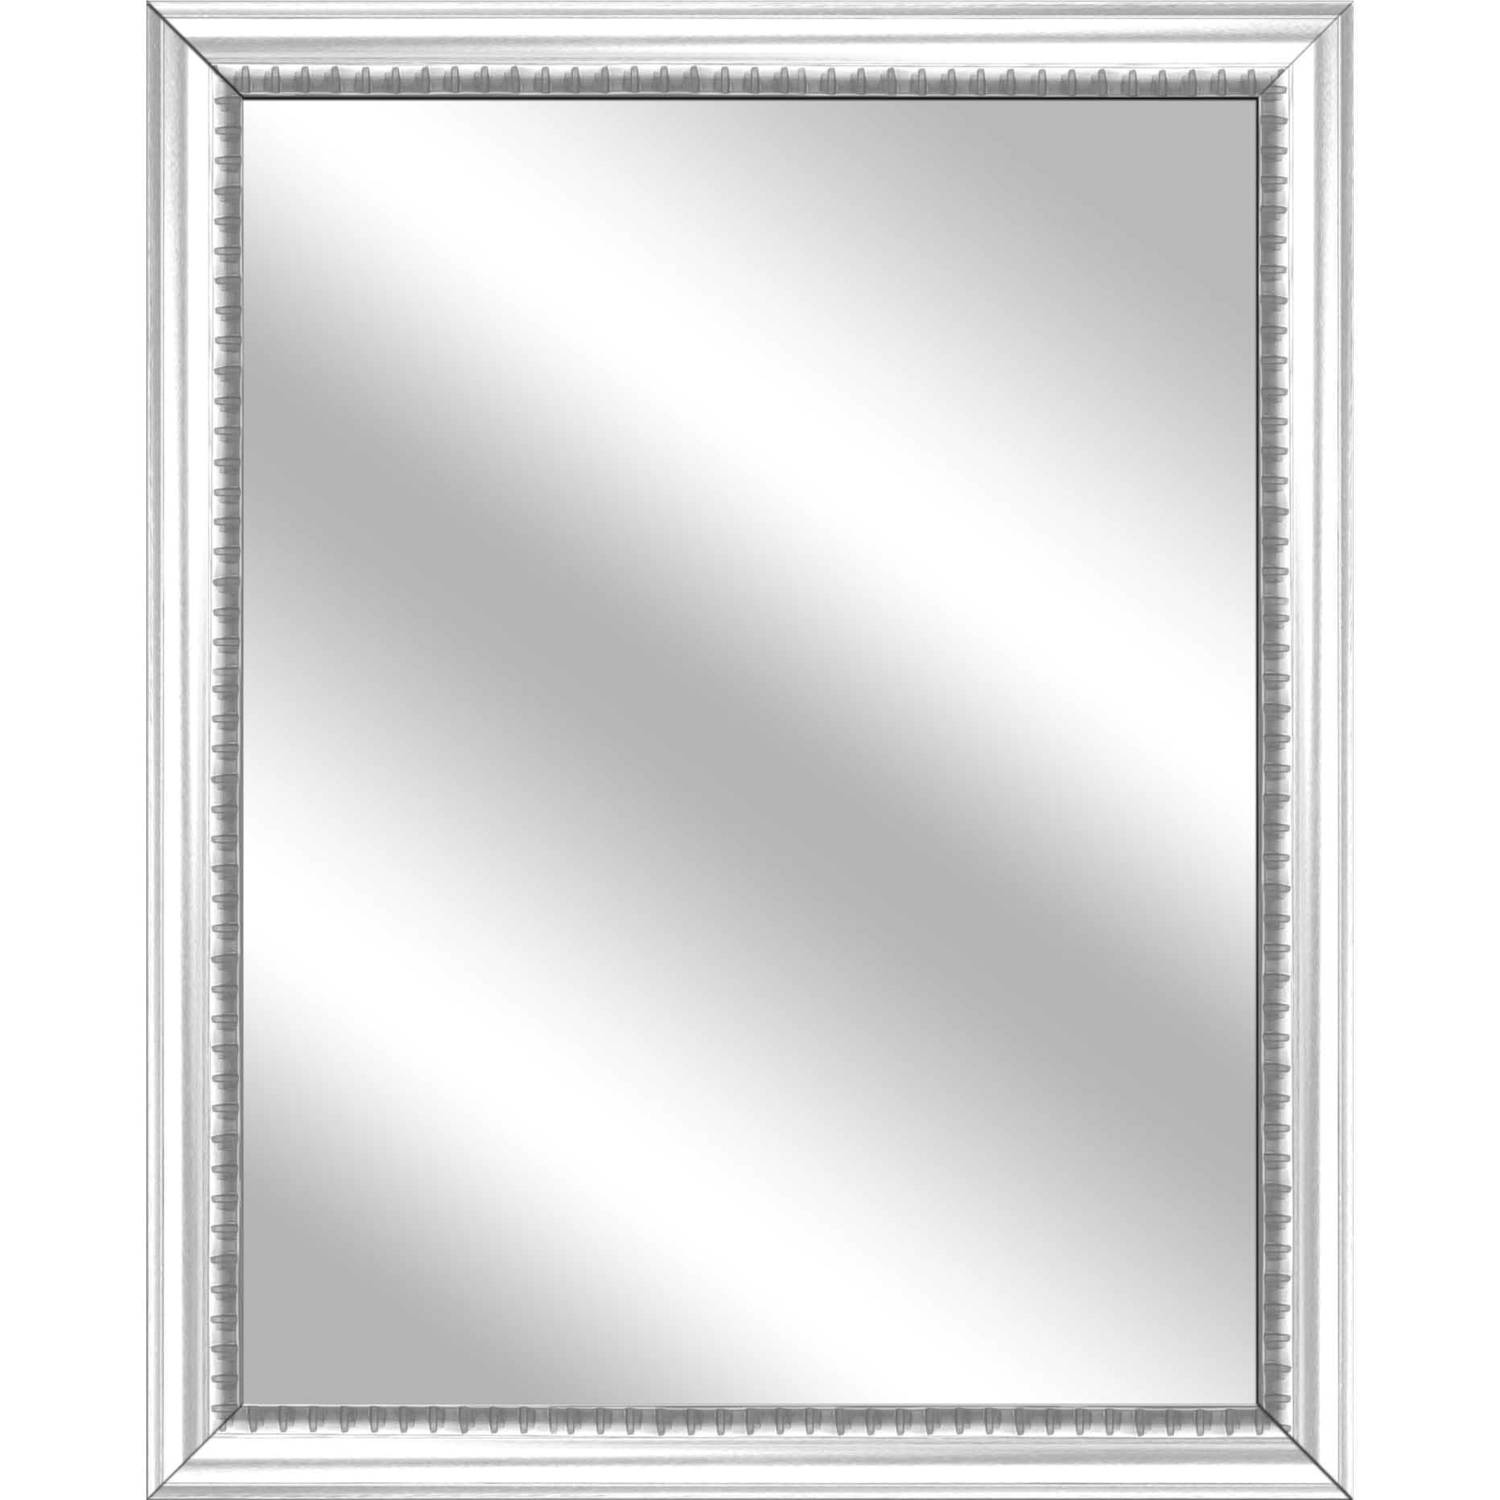 Vanity Mirror, White, 25x31 by PTM Images